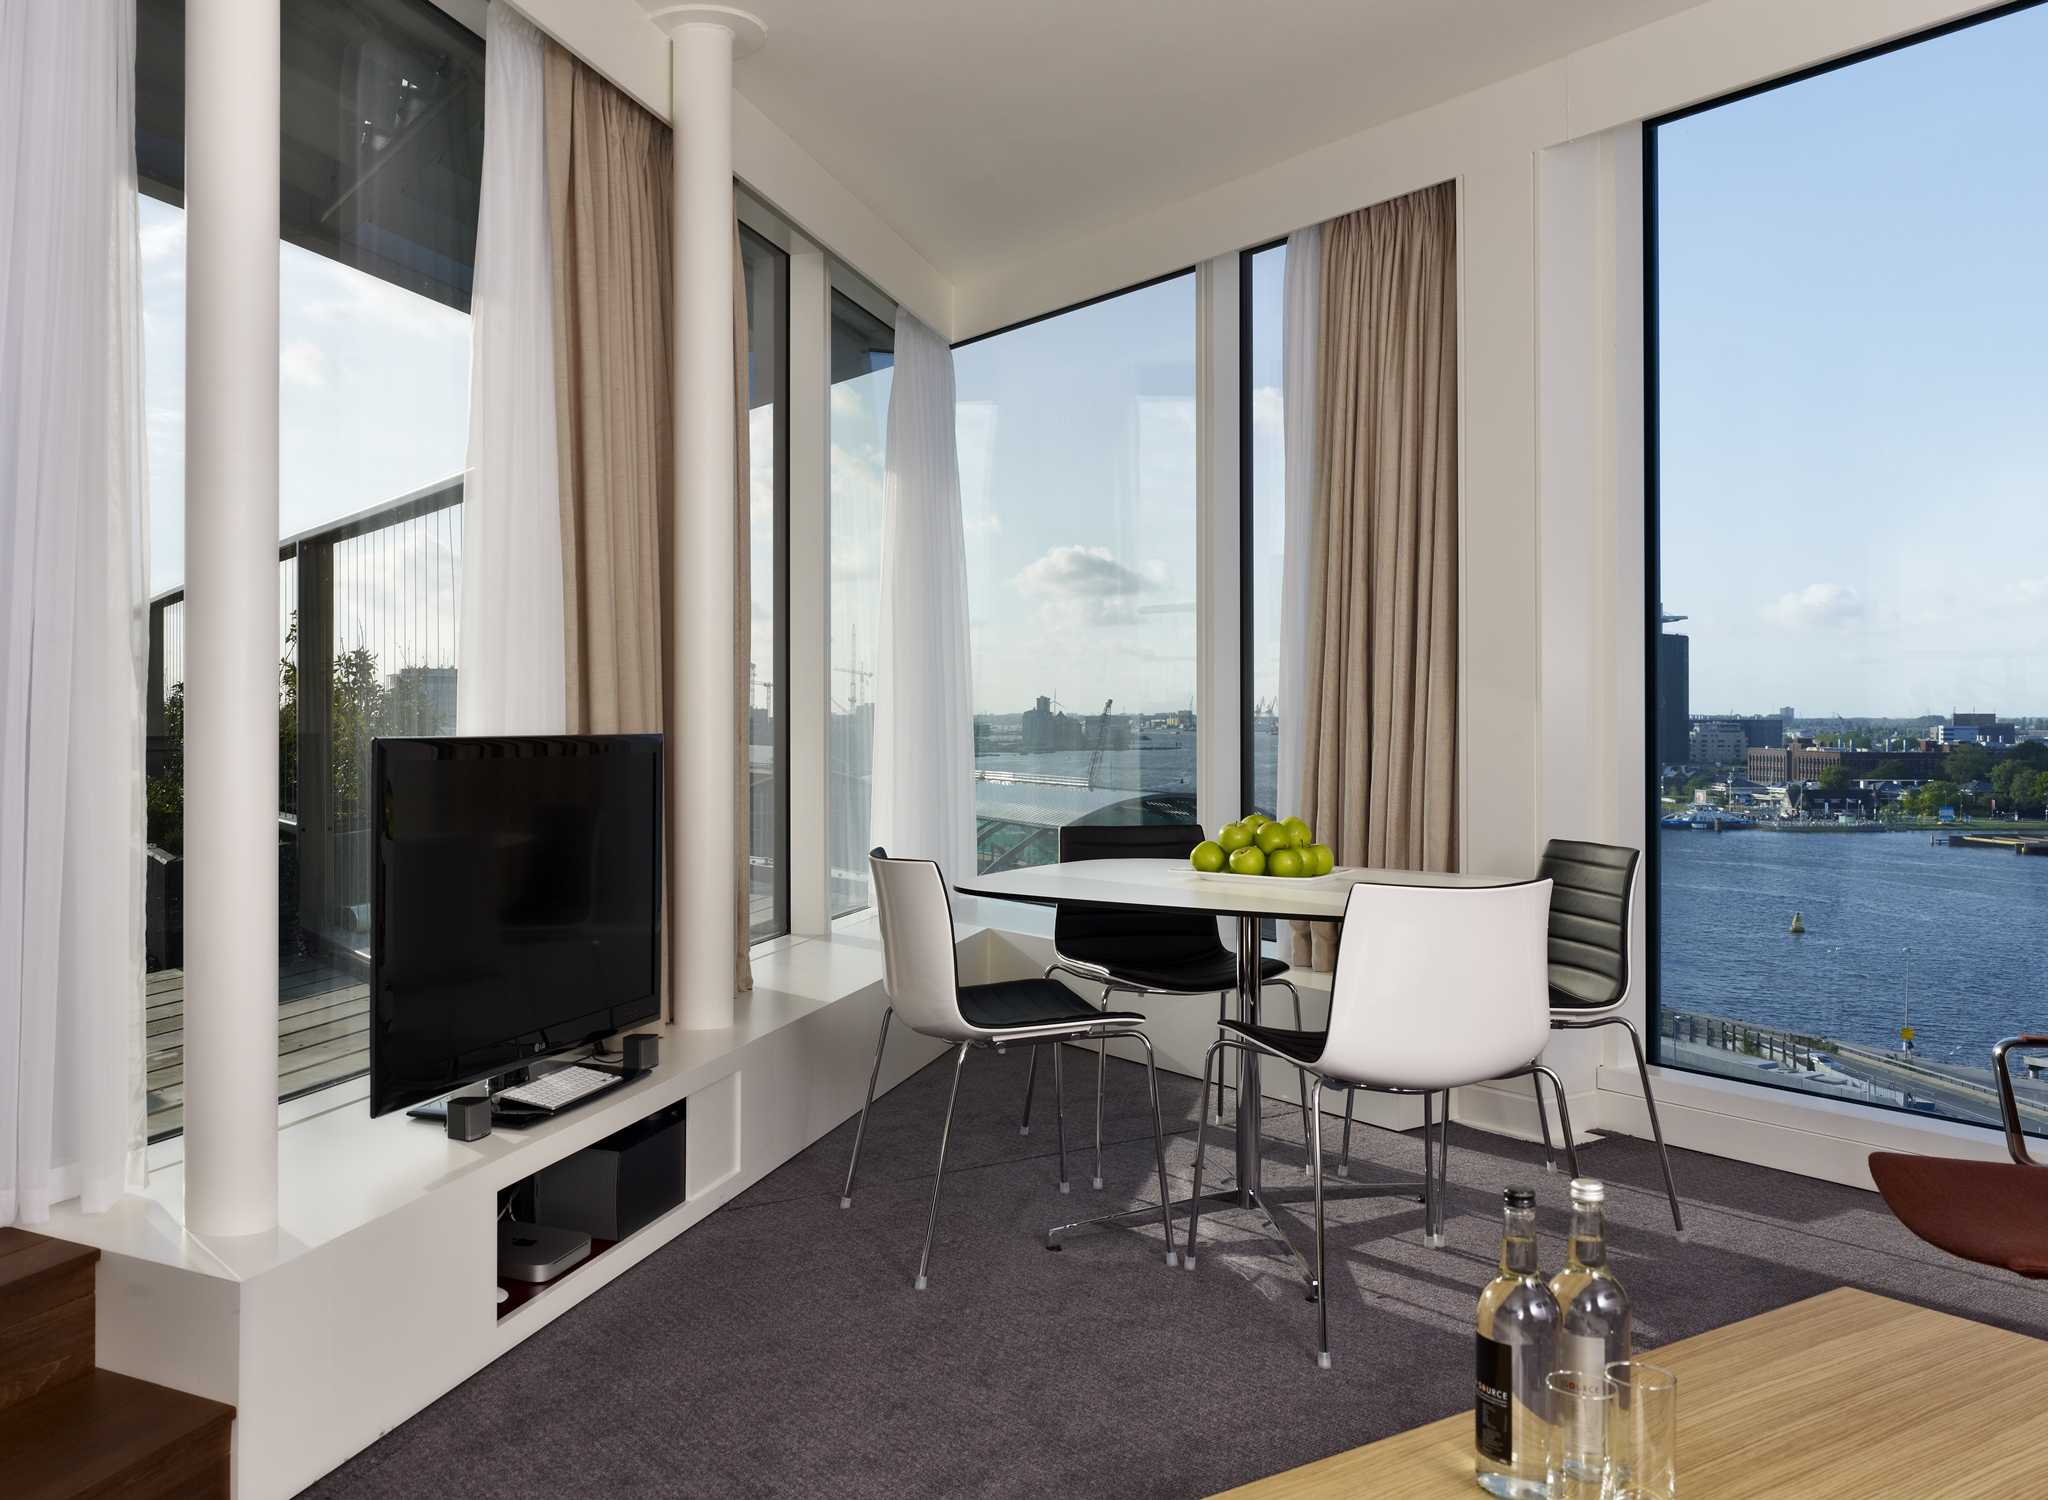 Doubletree By Hilton Hotel Amsterdam Centraal Station Amsterdam